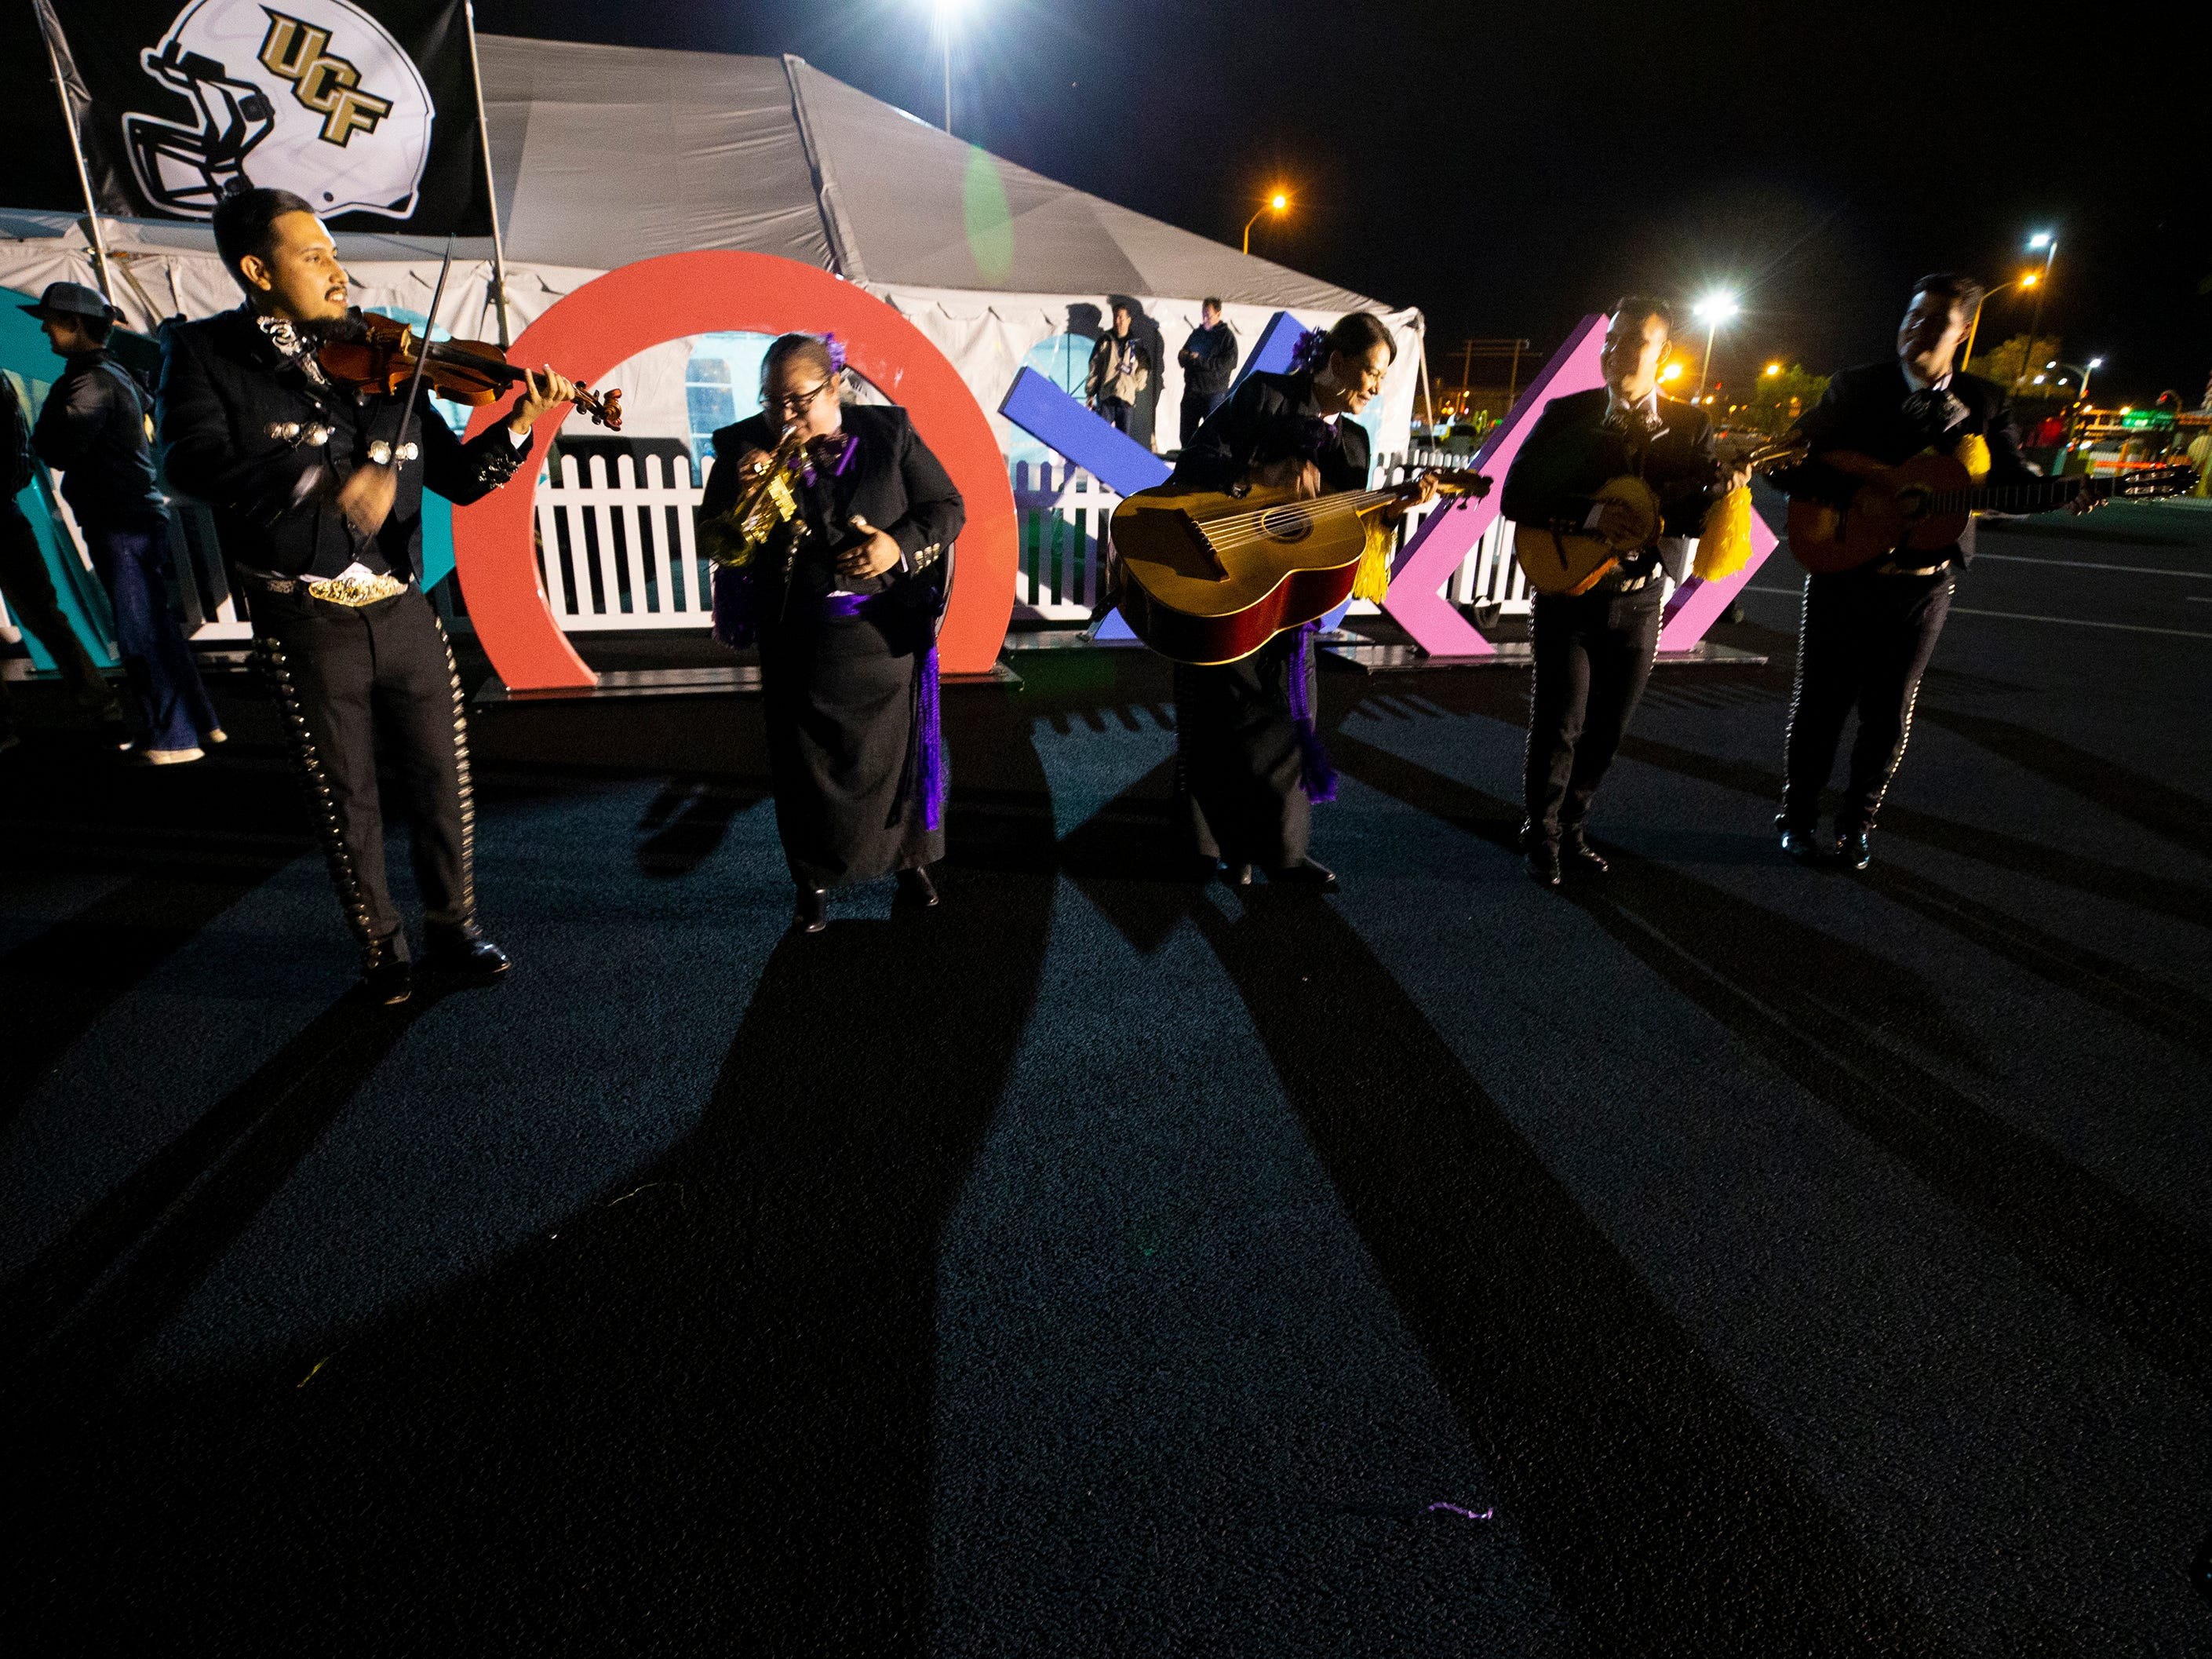 Mariachi Pasion plays while waiting for LSU to arrive at Sky Harbor International Airport in Phoenix on December 27. LSU will face Central Florida in the Fiesta Bowl on New Year's Day